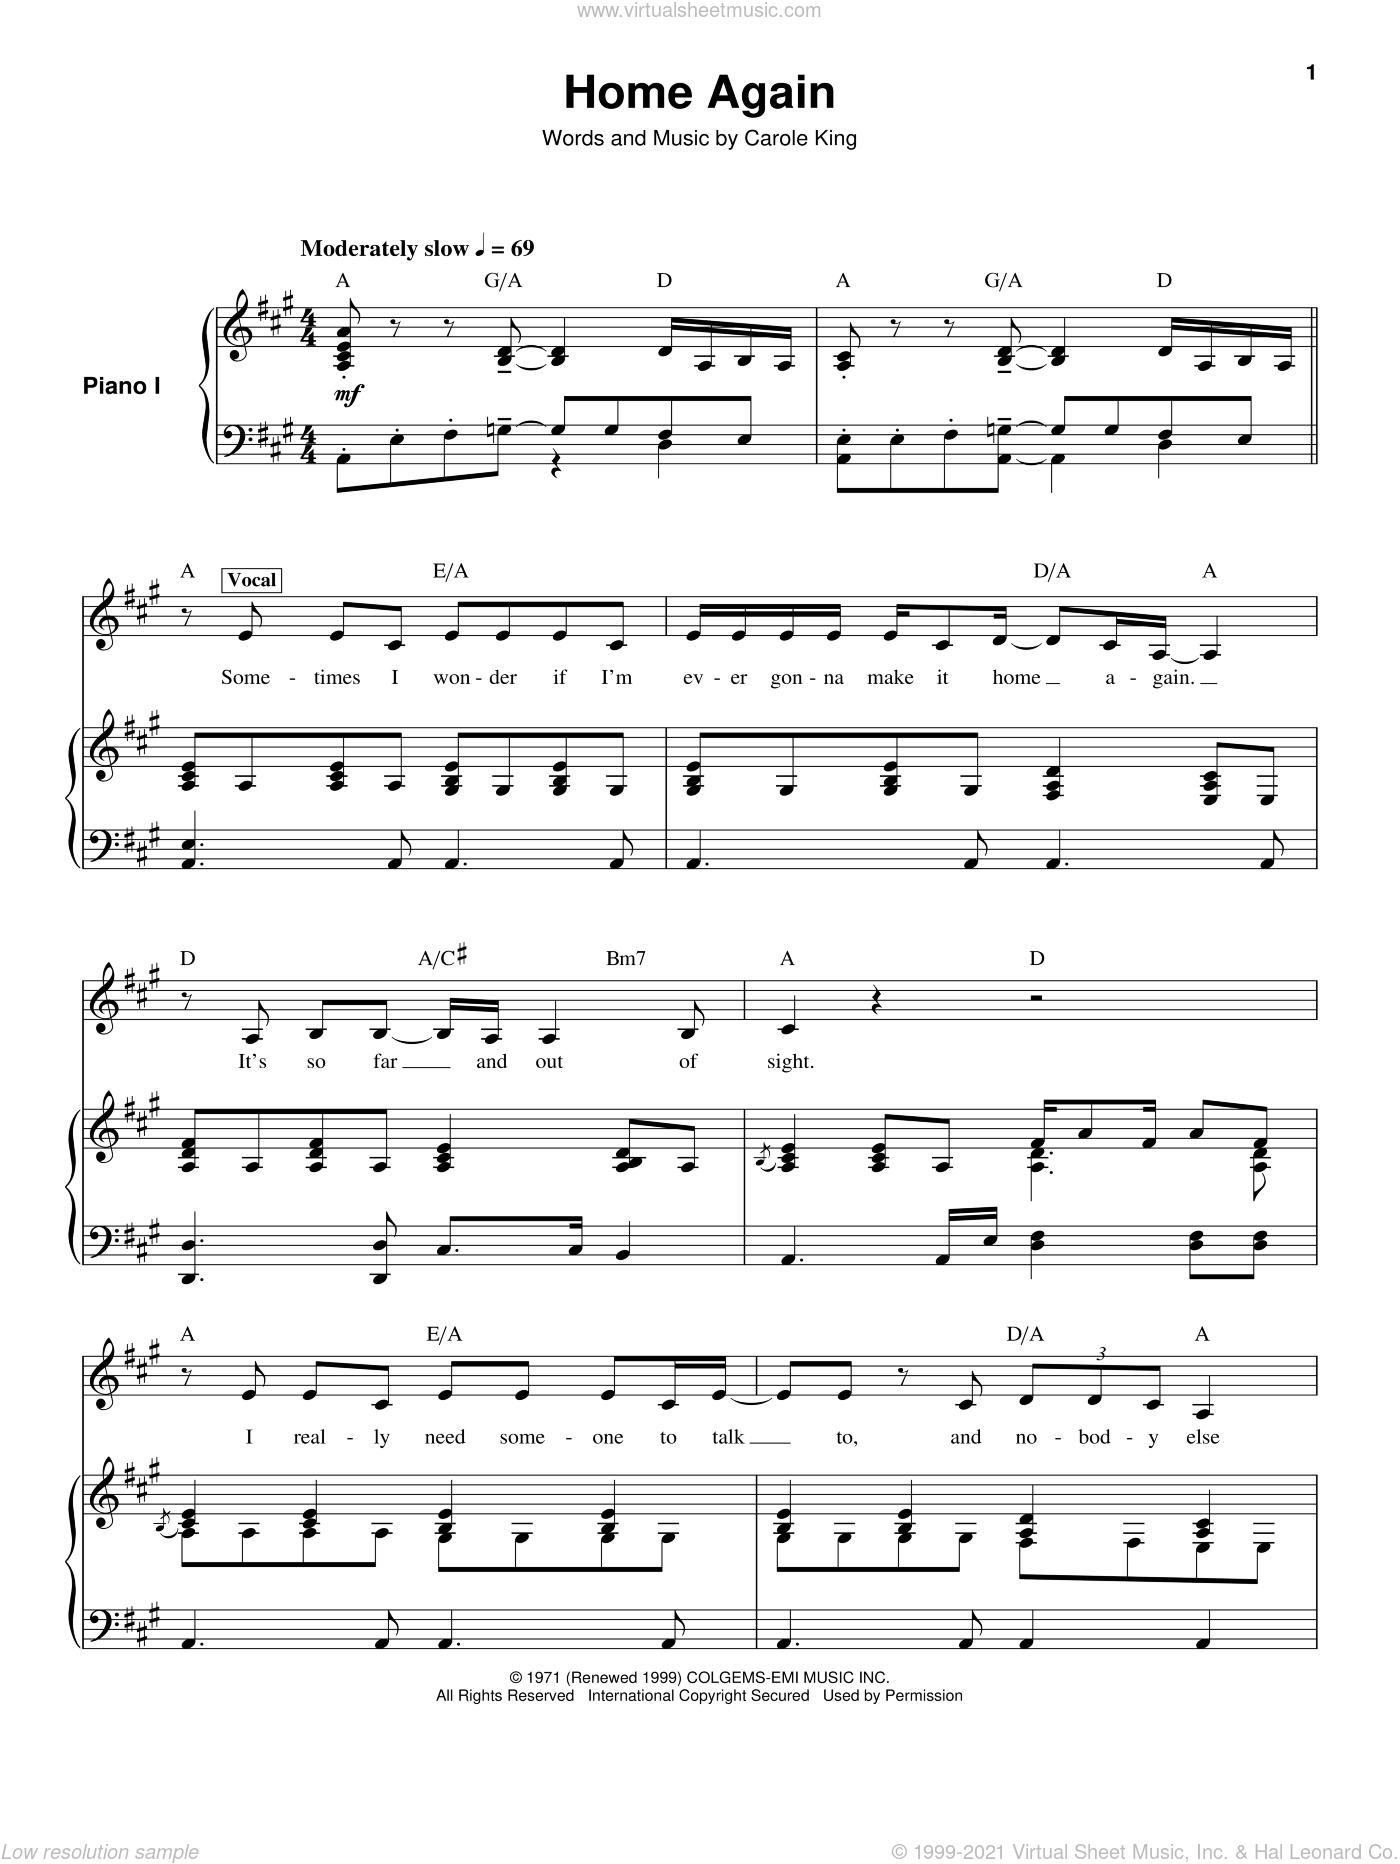 Home Again sheet music for keyboard or piano by Carole King. Score Image Preview.